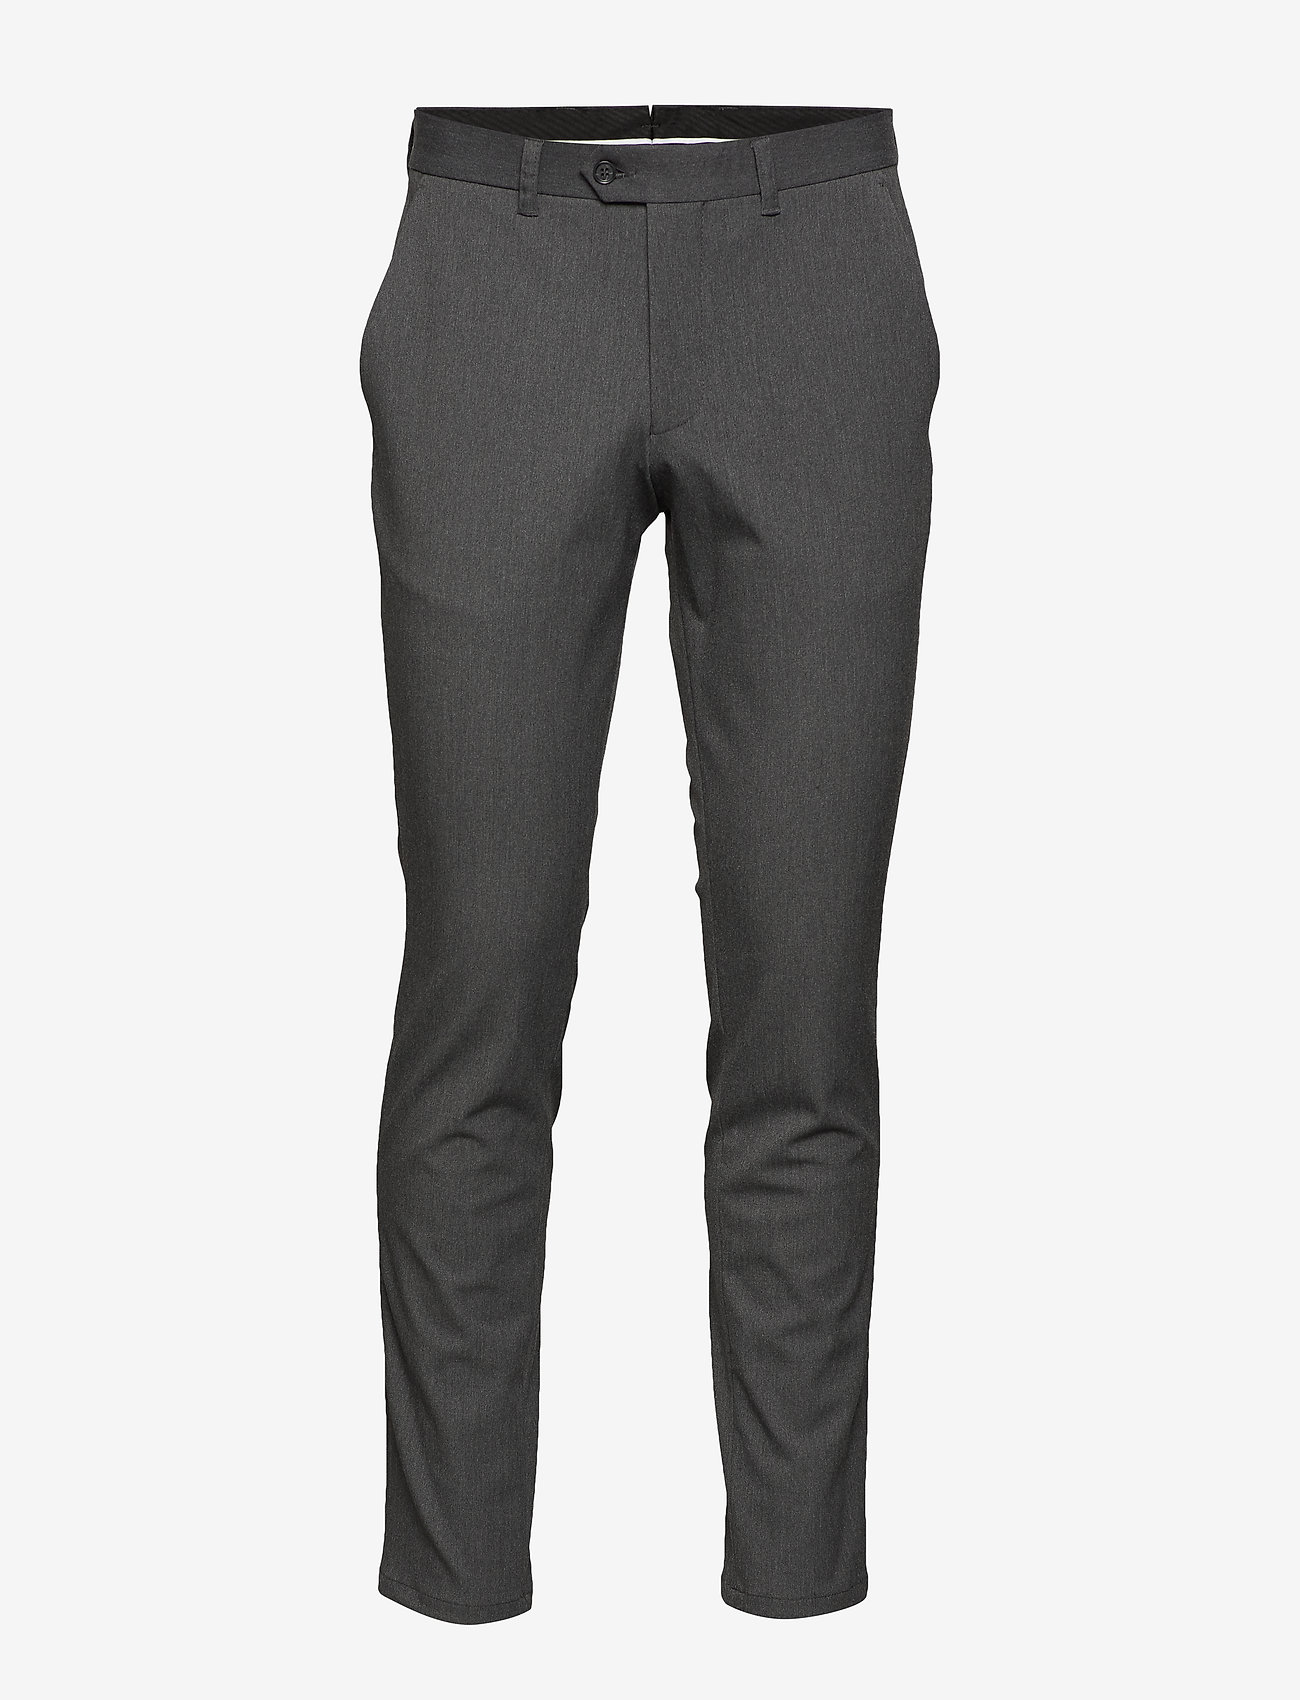 Selected Homme - SLHSLIM-CARLO FLEX PANTS B NOOS - suitbukser - grey melange - 0